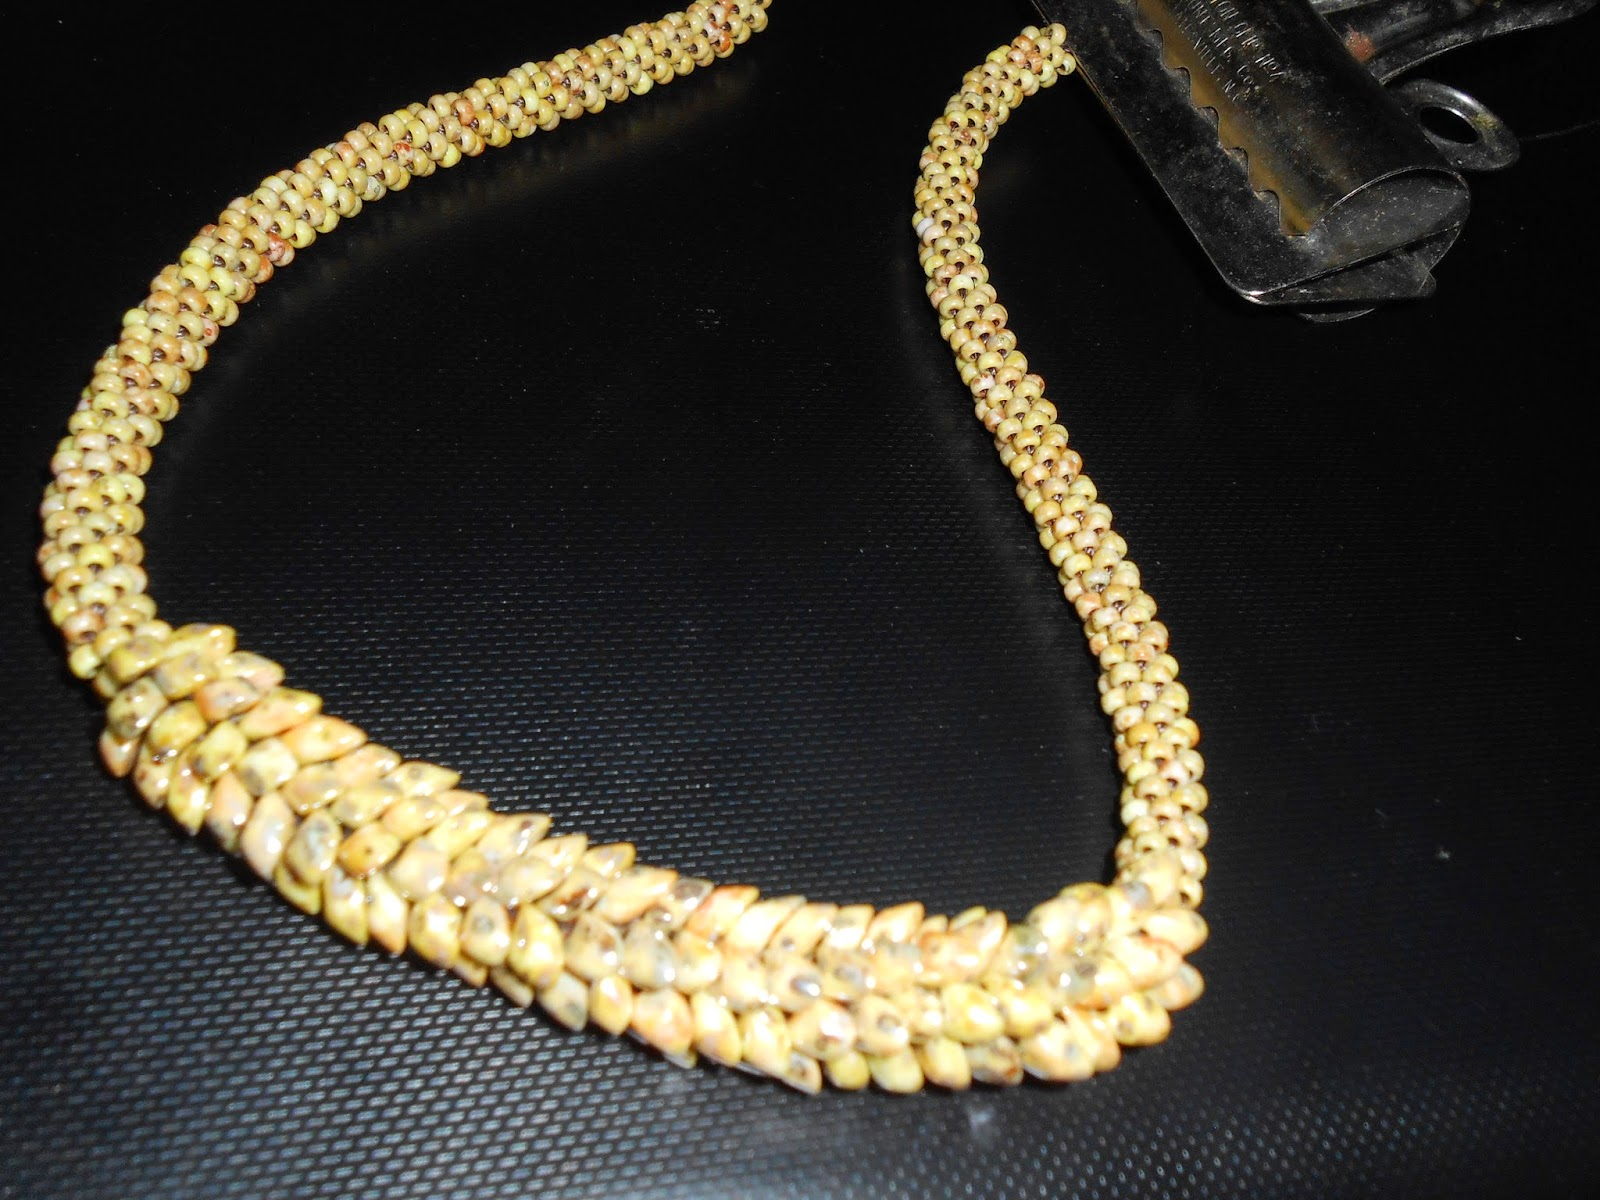 Art therapy: kumihimo braid necklace with beads